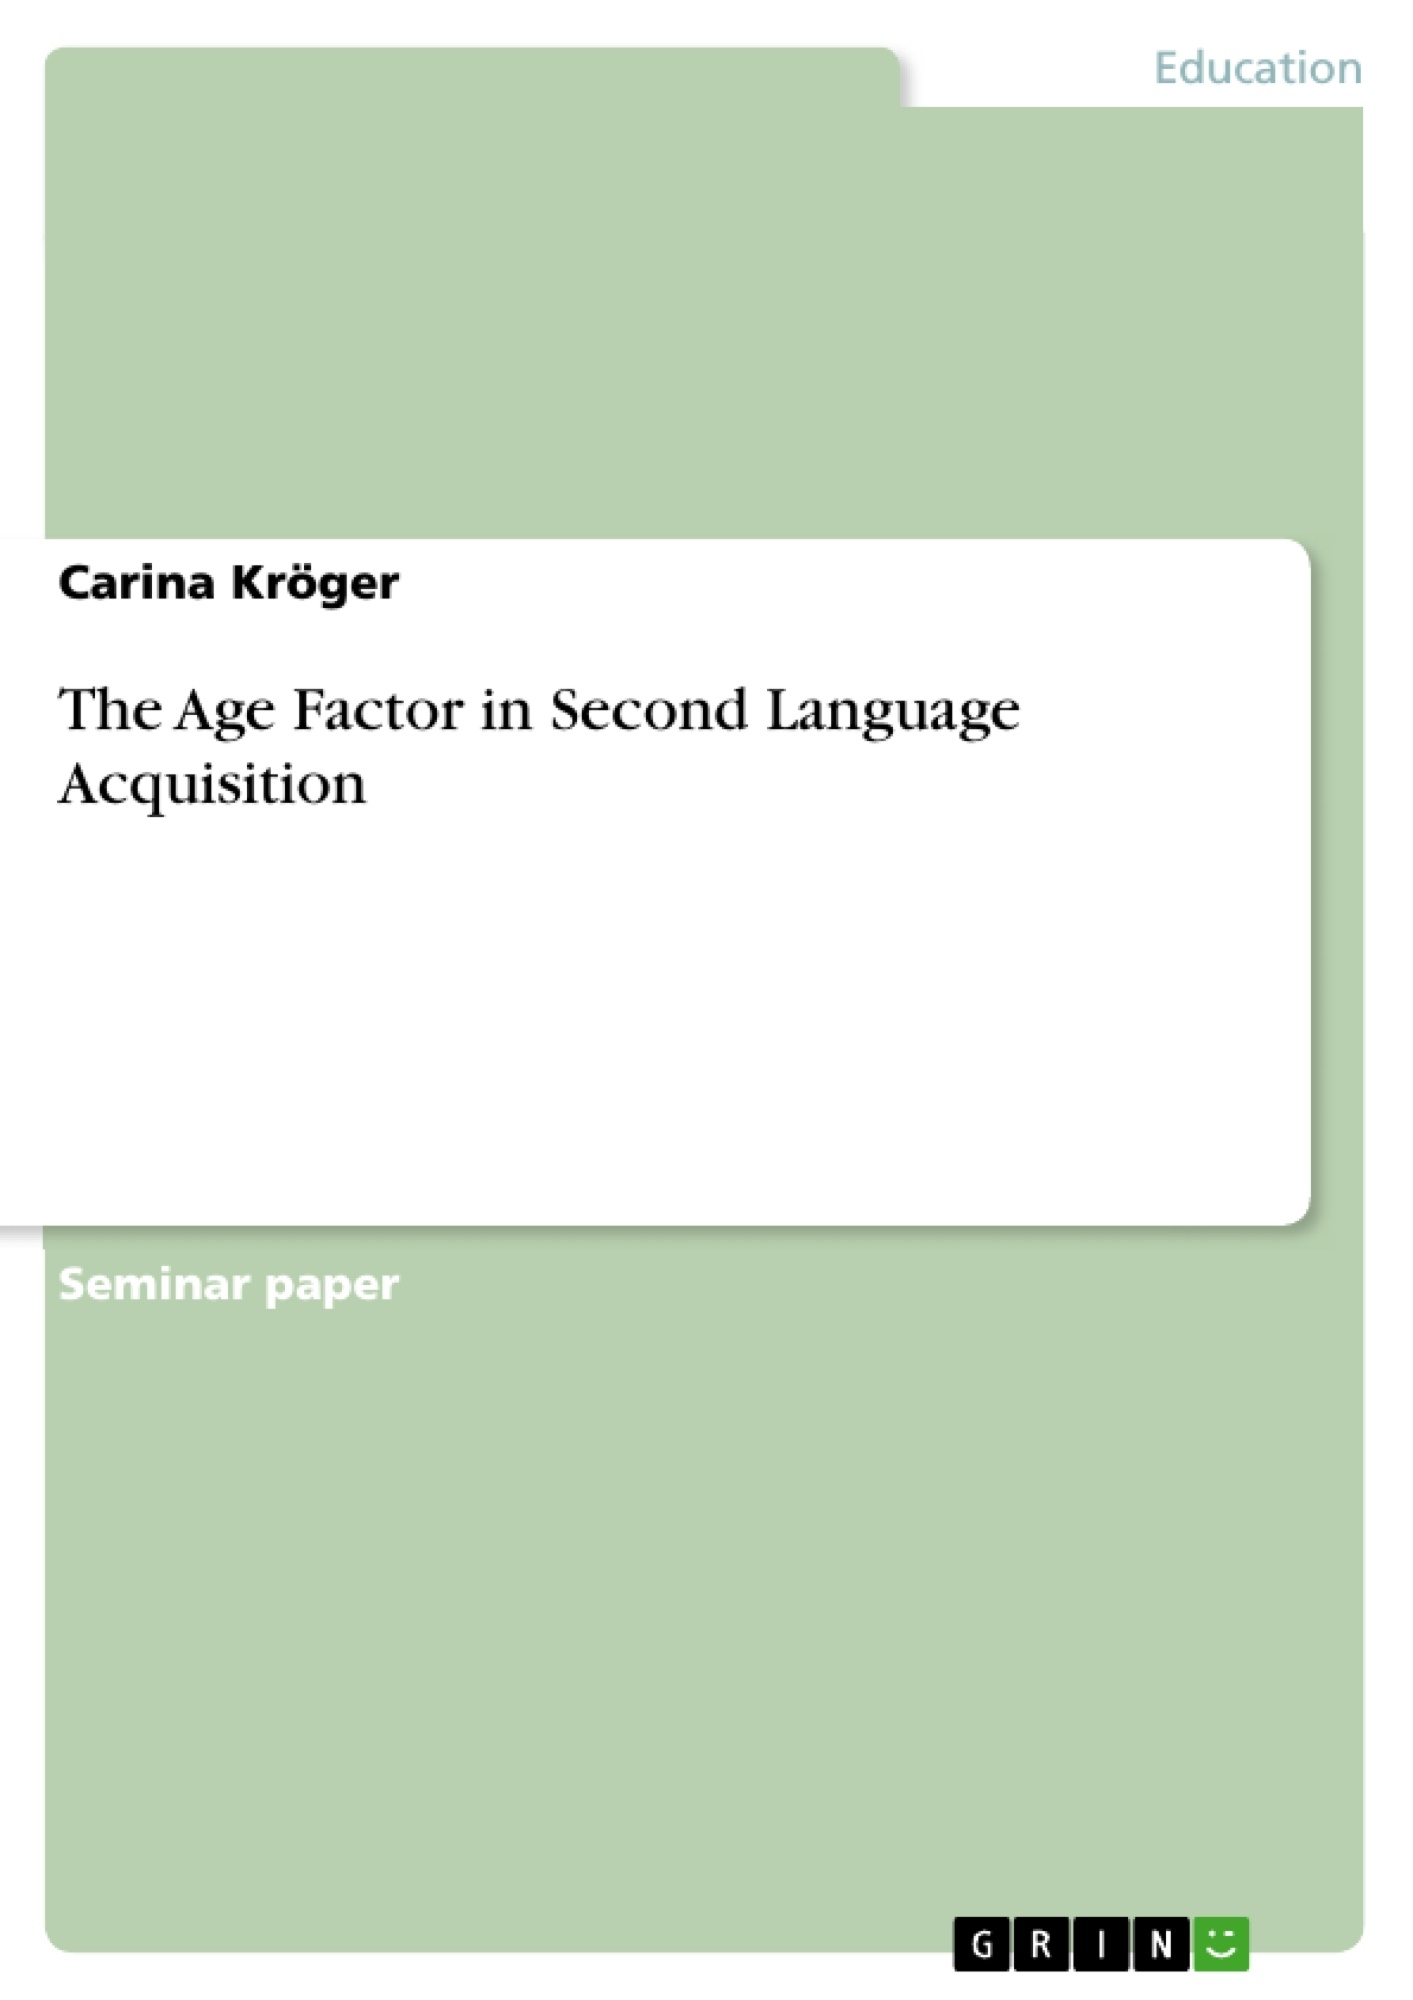 Title: The Age Factor in Second Language Acquisition